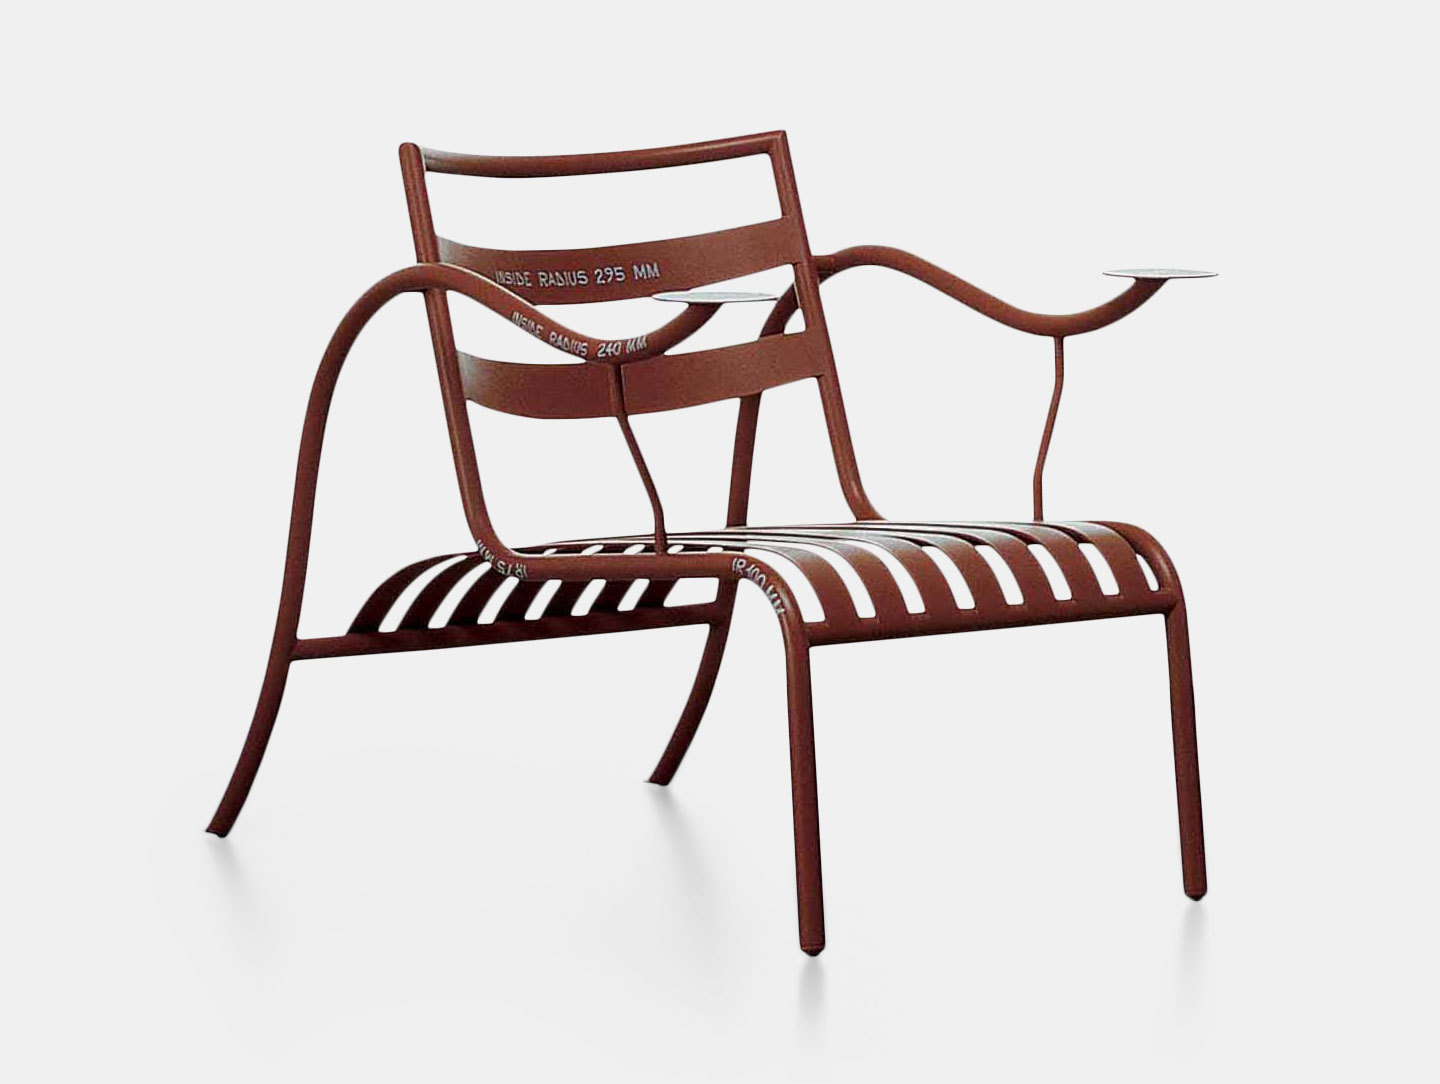 Cappellini Thinking Mans Chair Terracotta With Writing Jasper Morrison